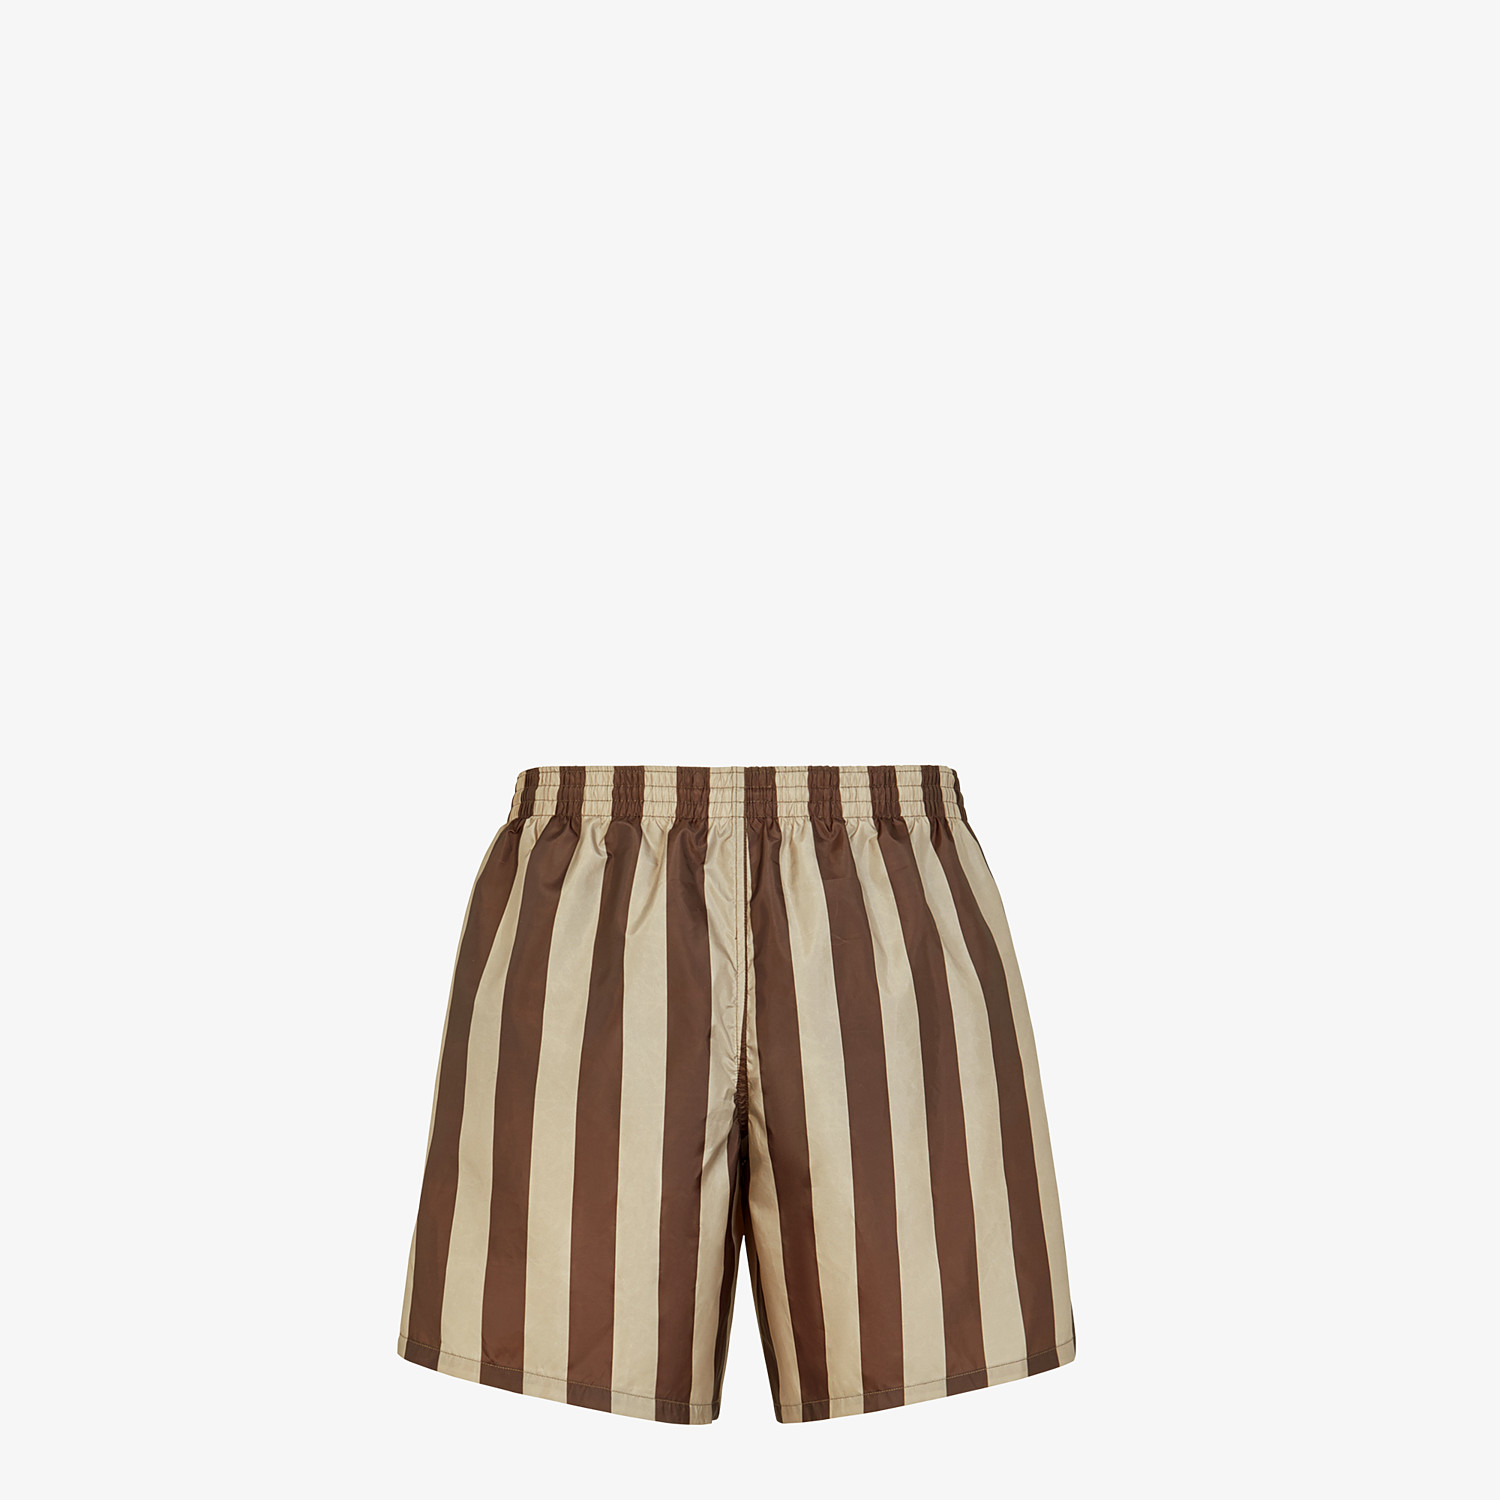 FENDI SWIM SHORTS - Multicolour tech fabric shorts - view 2 detail